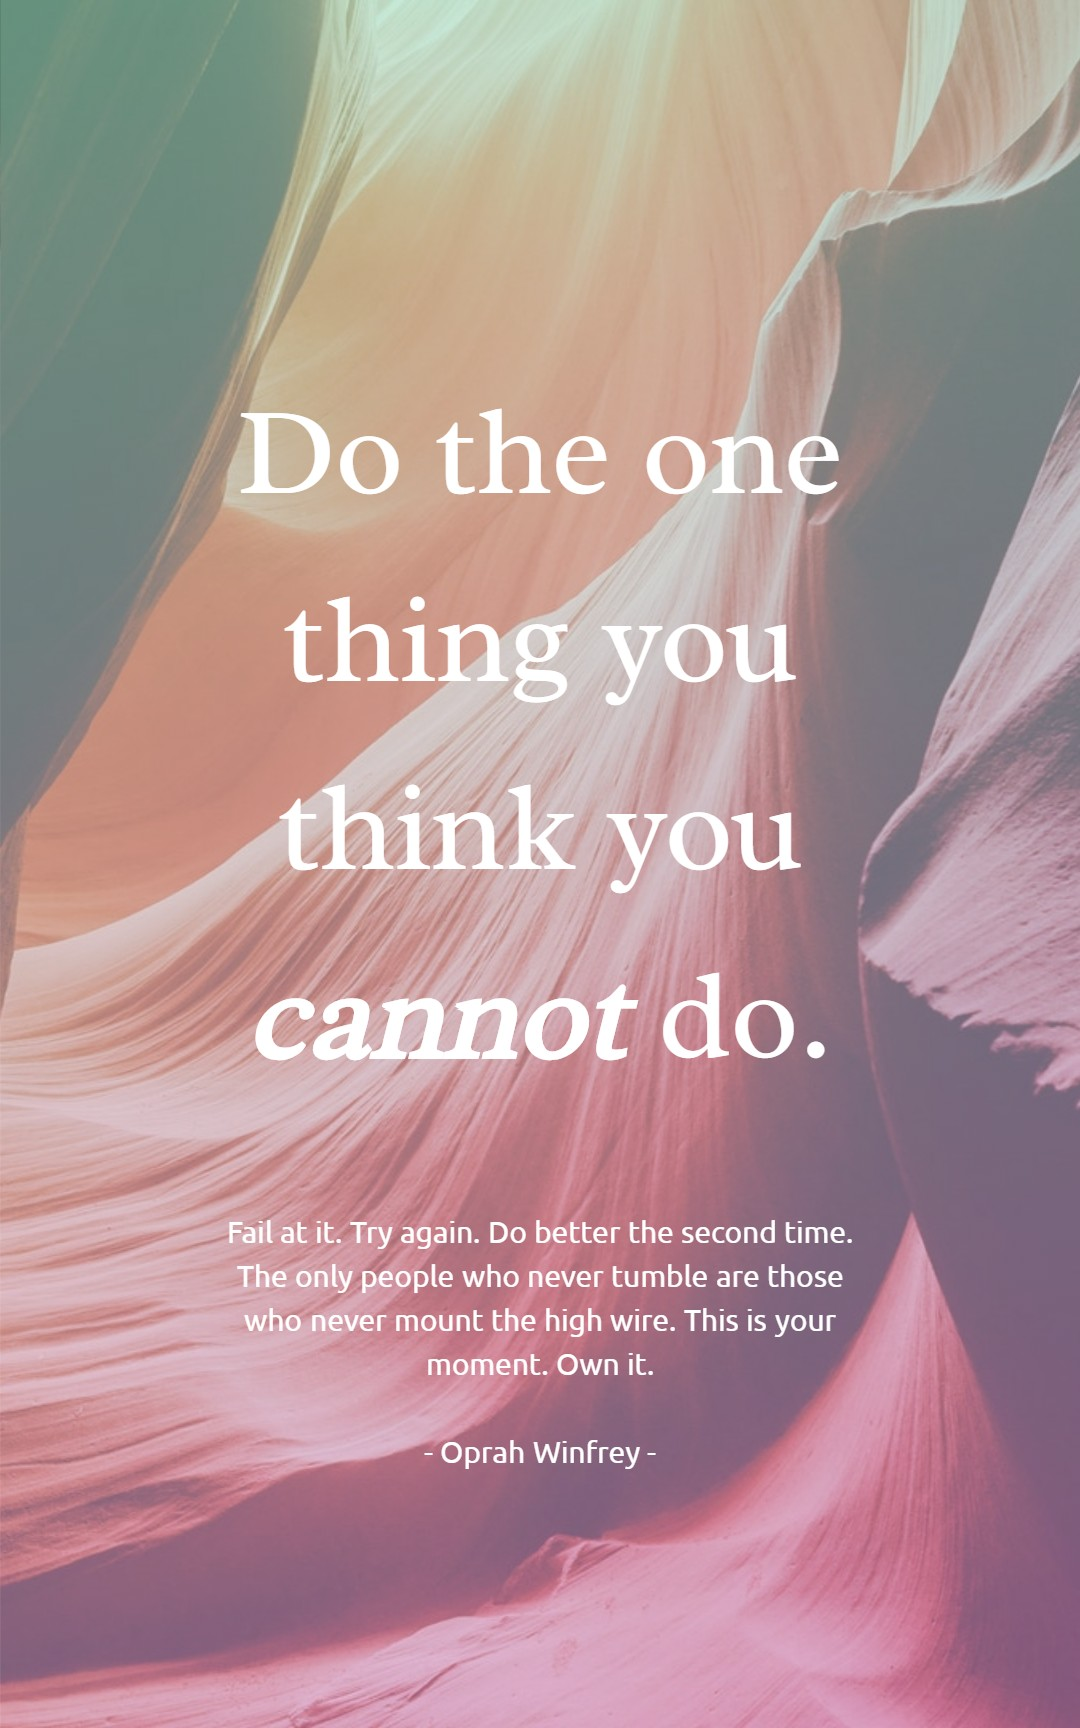 Quotes image of Do the one thing you think you cannot do. Fail at it. Try again. Do better the second time. The only people who never tumble are those who never mount the high wire. This is your moment. Own it.